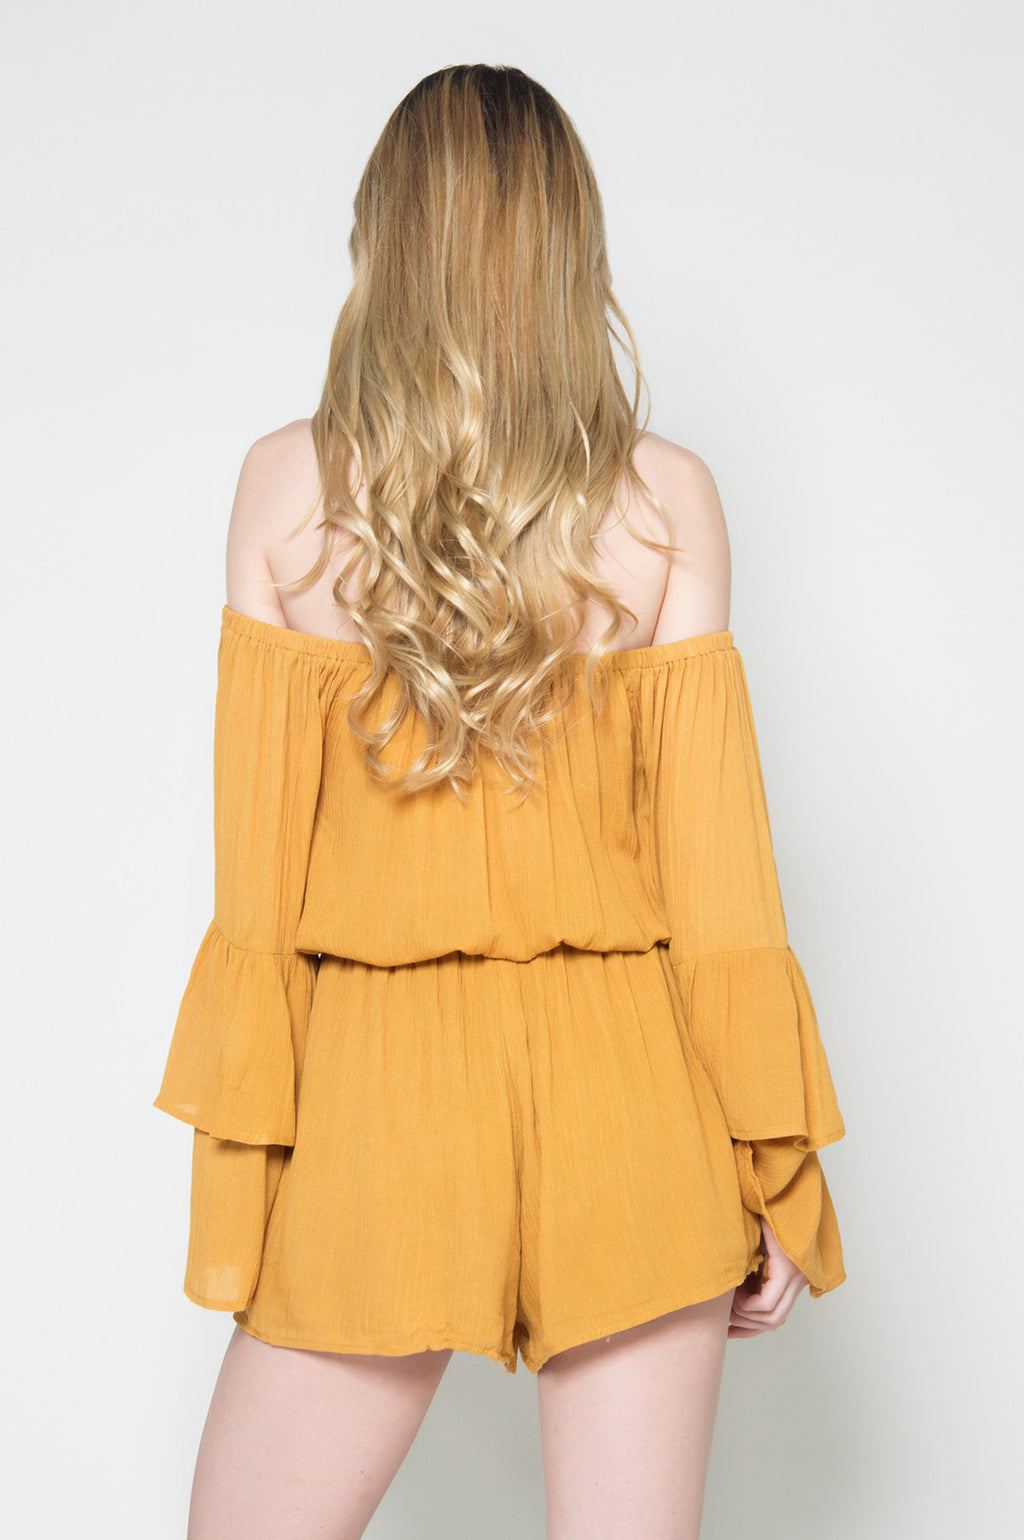 Essence of nature off shoulder romper, Rompers